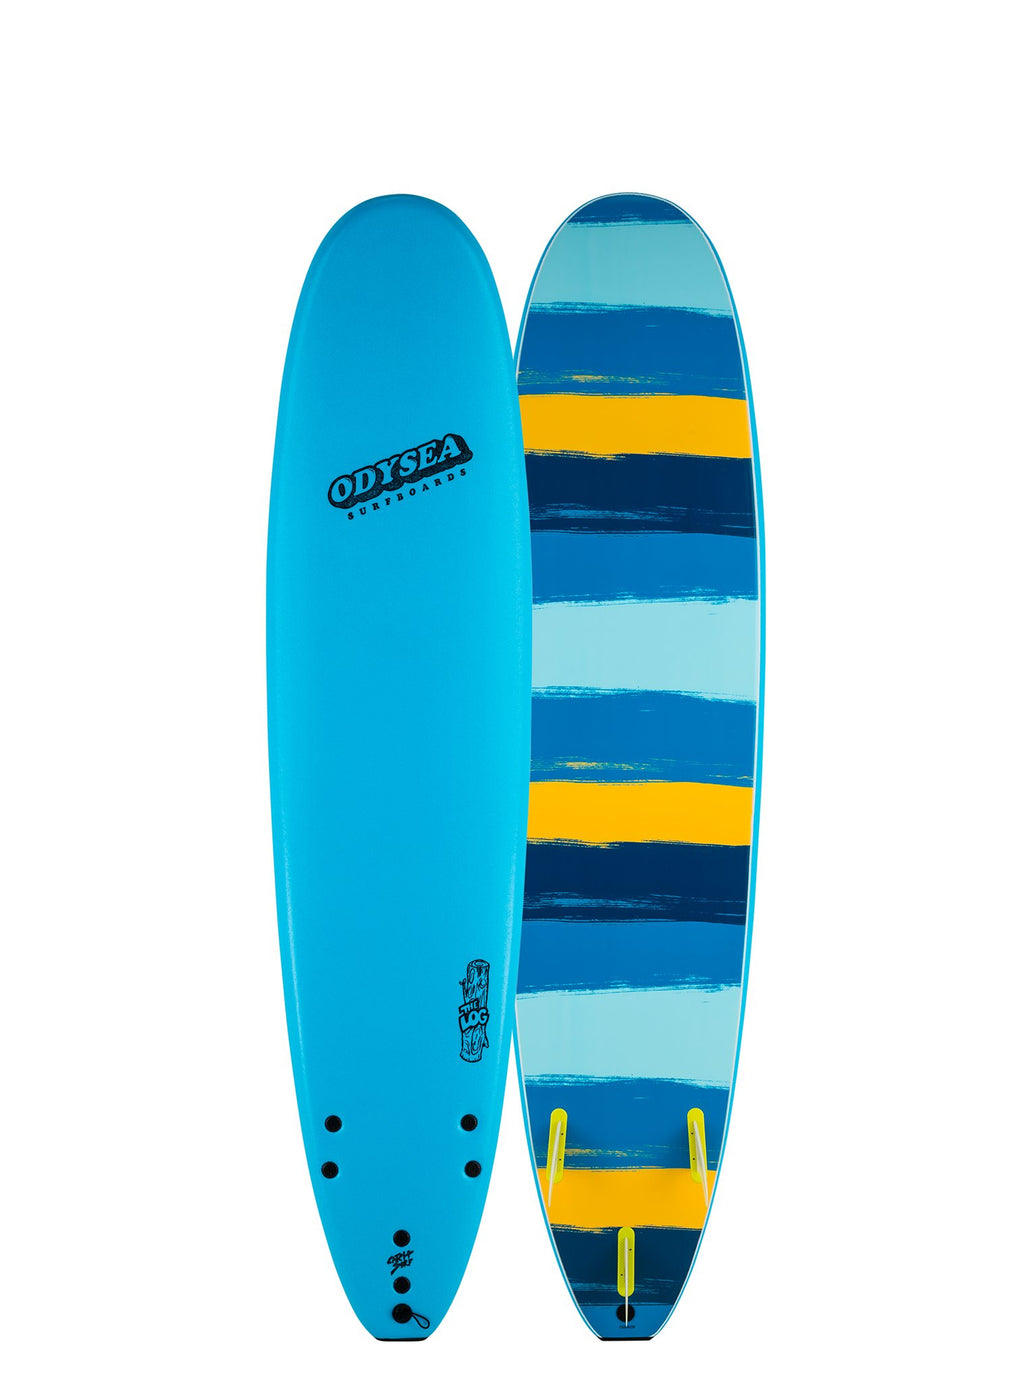 "Odysea LOG 8' 0"" Cool Blue"